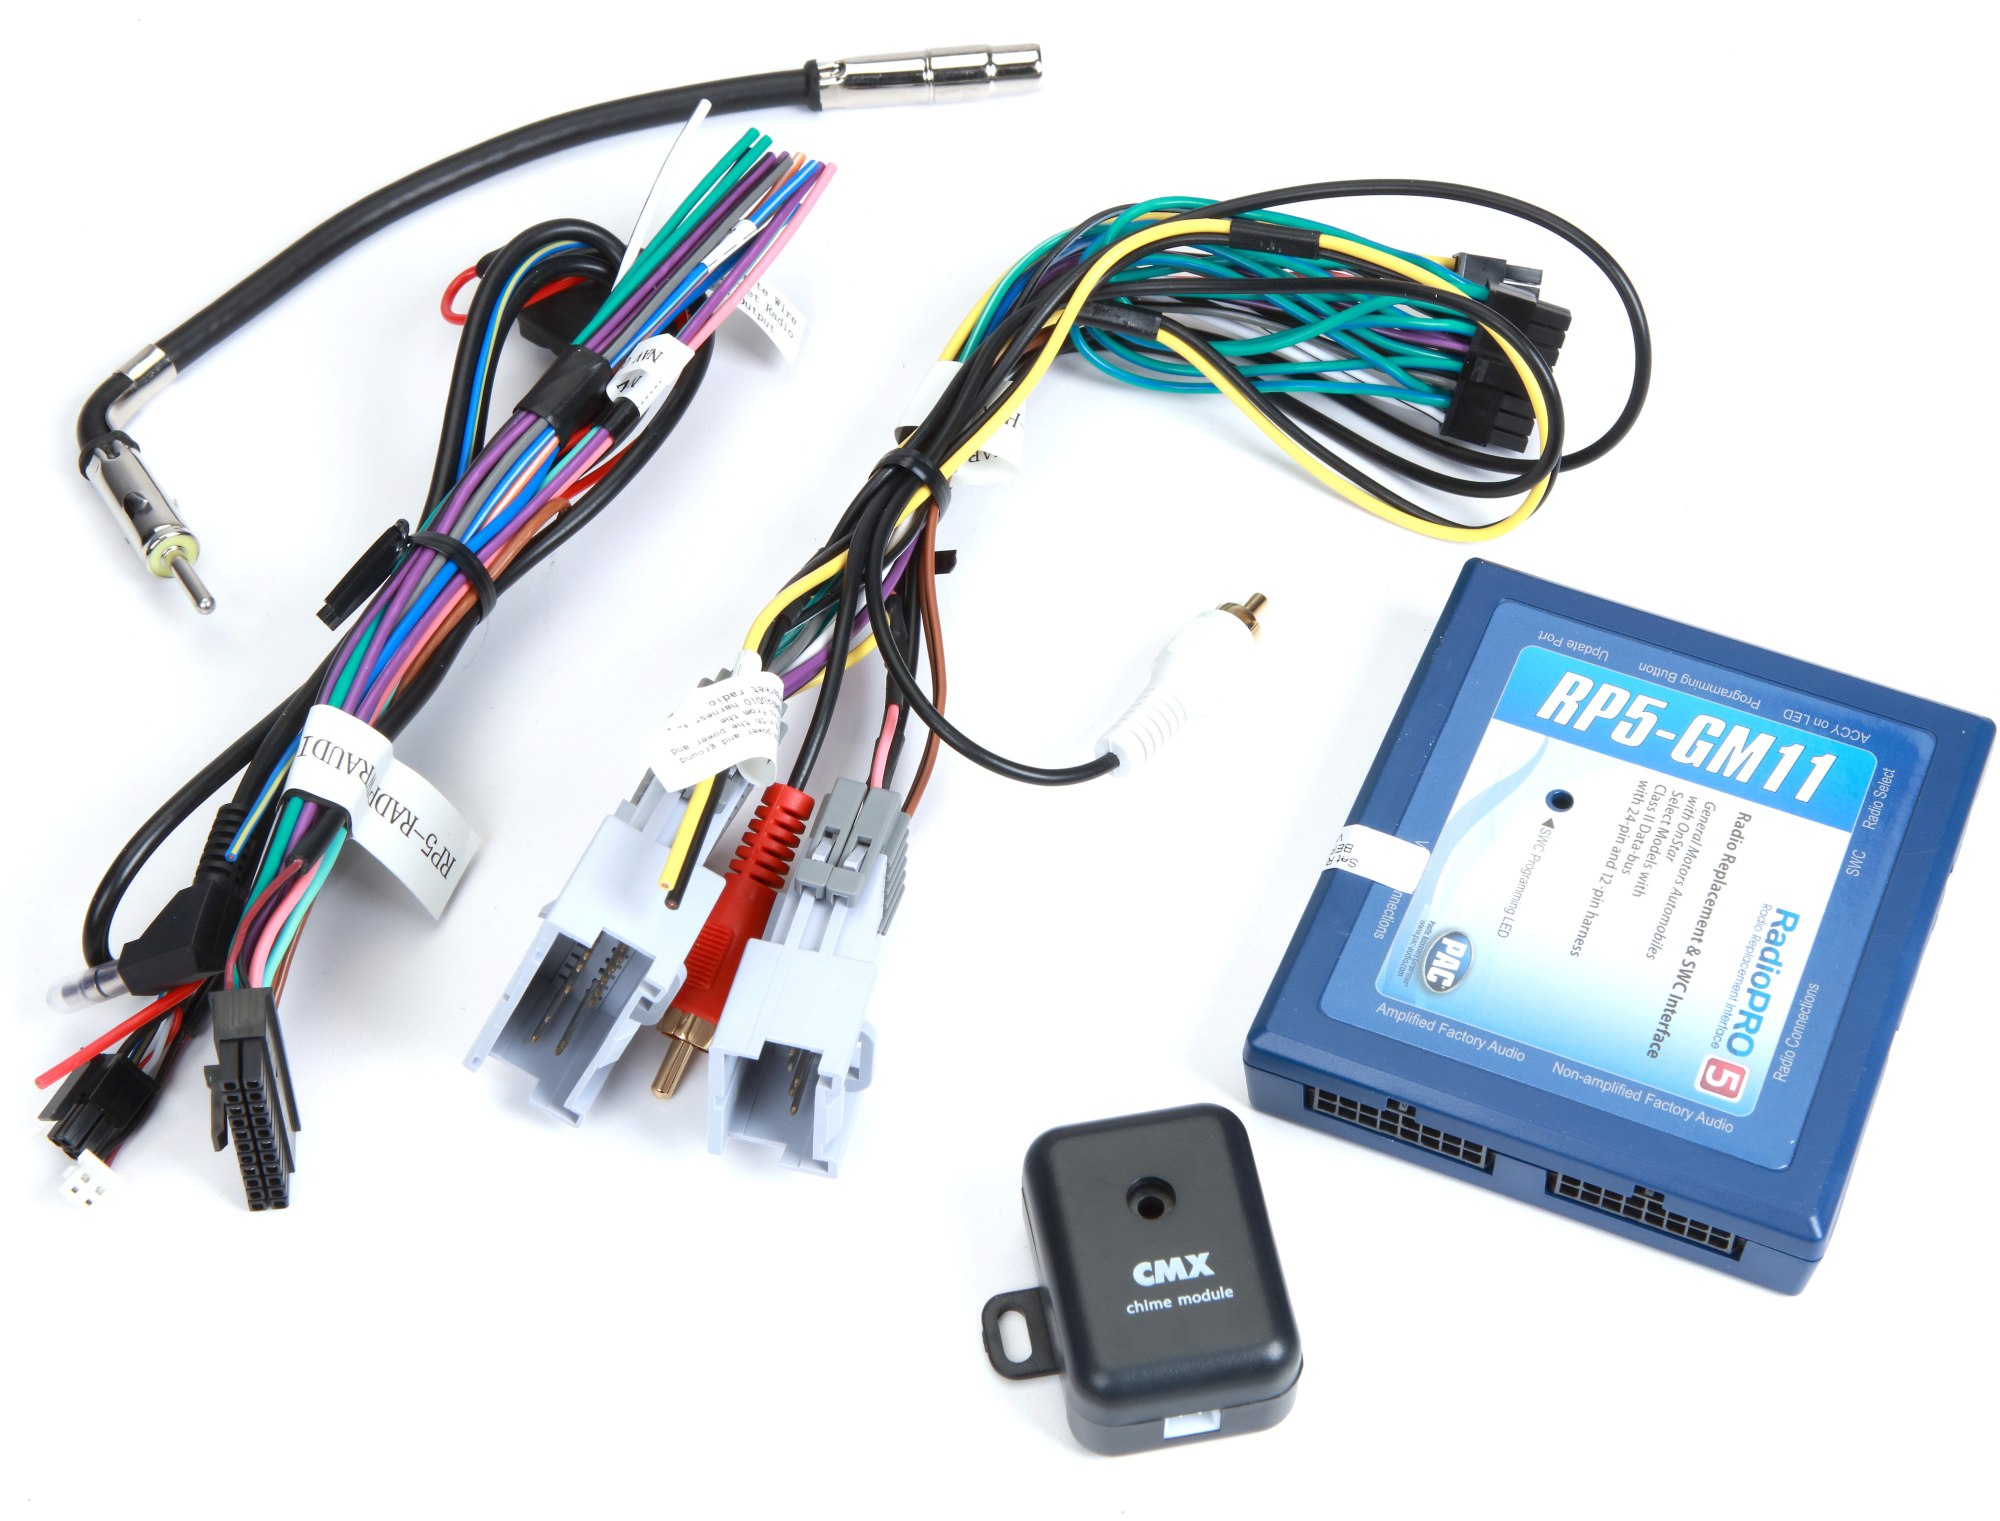 hight resolution of pac rp5 gm11 wiring interface connect a new car stereo and retain onstar factory amp and steering wheel audio controls in select 2000 up gm vehicles at